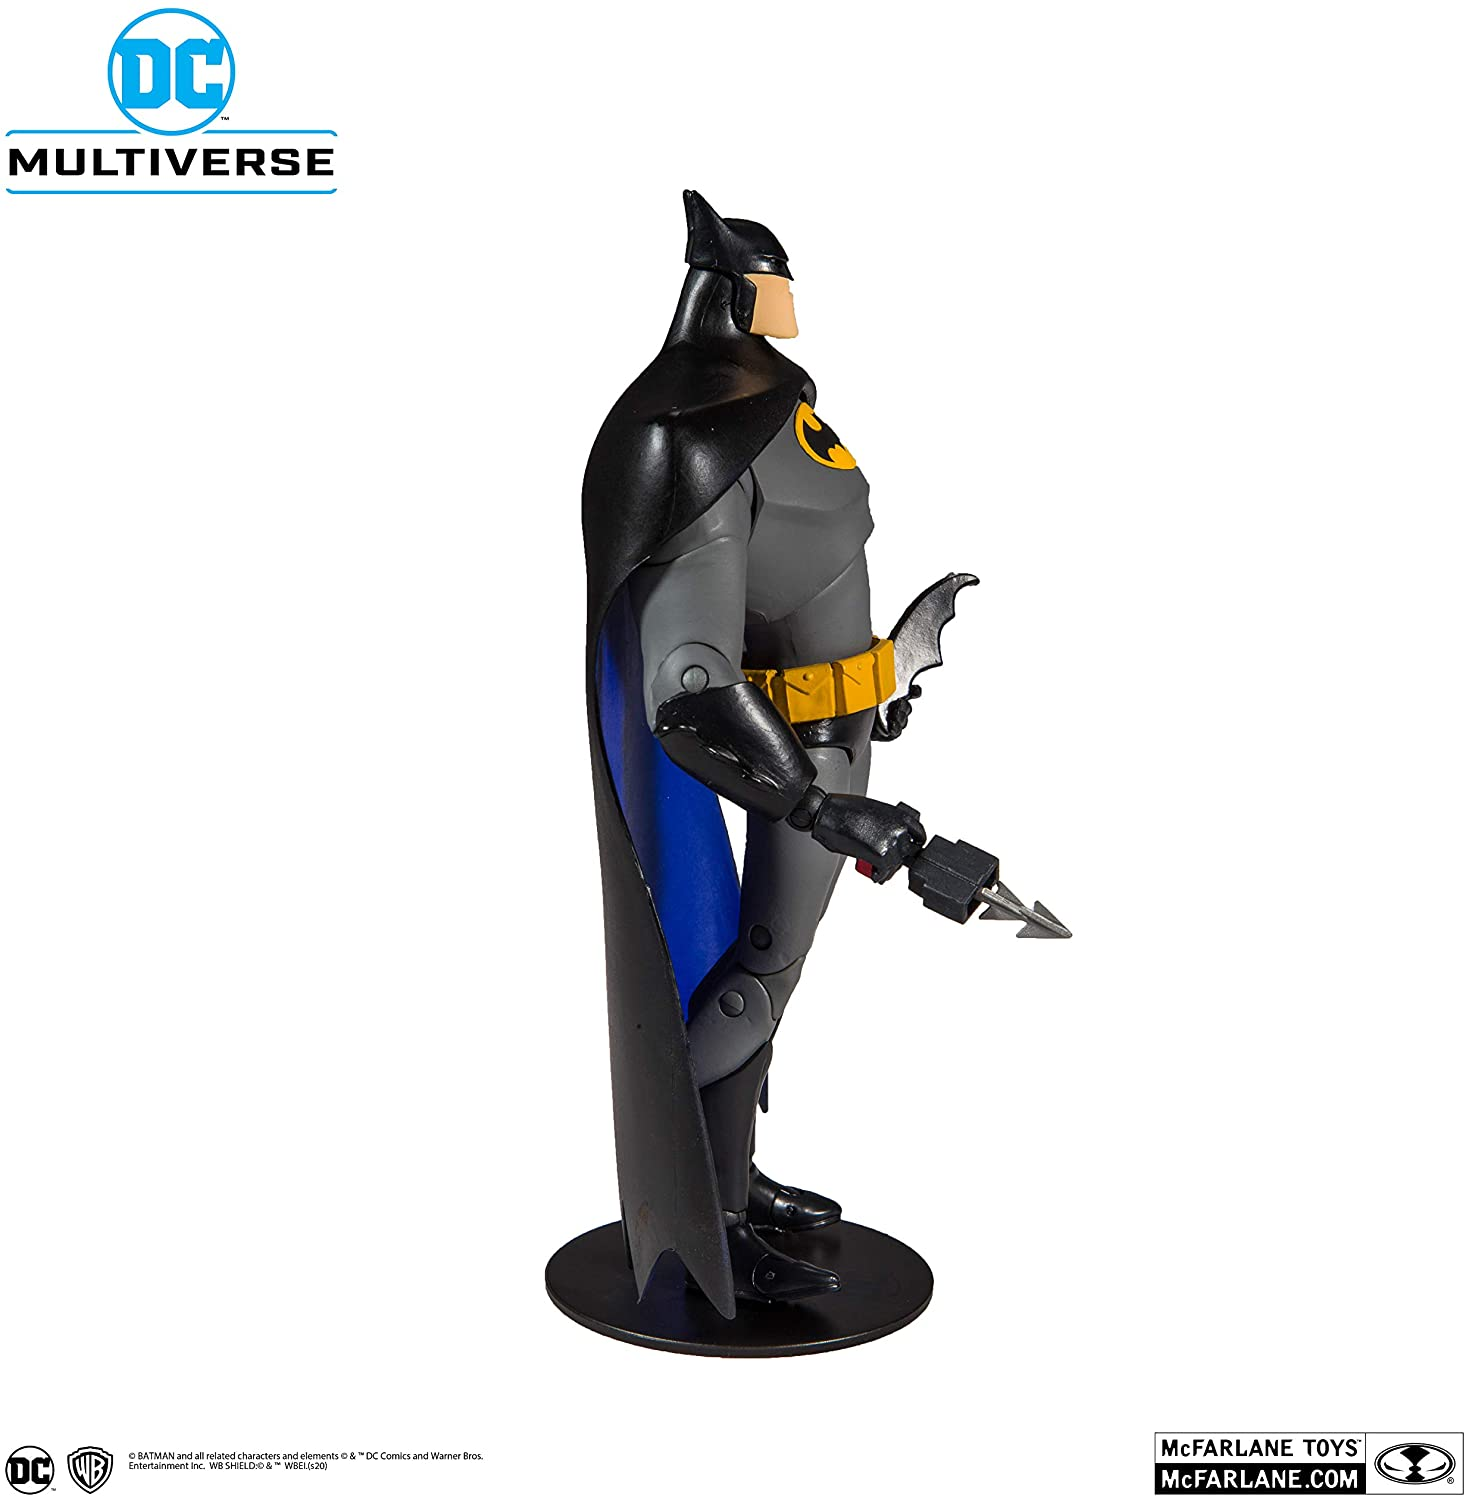 McFarlane Toys - DC Multiverse - Batman (Batman: The Animated Series) Action Figure